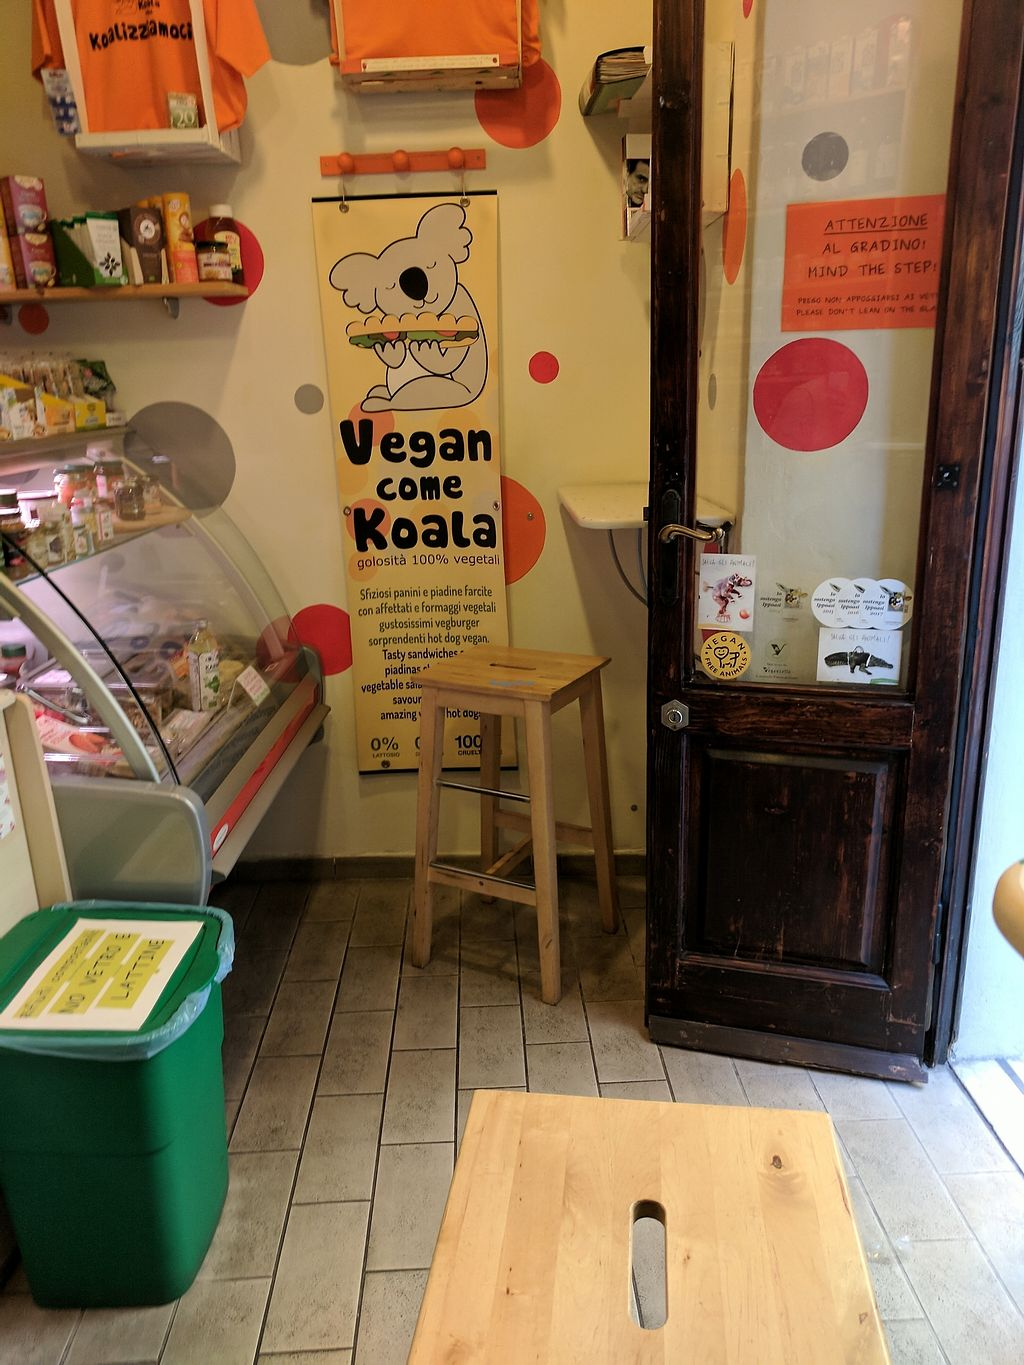 """Photo of Vegan Come Koala  by <a href=""""/members/profile/lmcc"""">lmcc</a> <br/>Interior of shop <br/> December 15, 2017  - <a href='/contact/abuse/image/30709/335940'>Report</a>"""